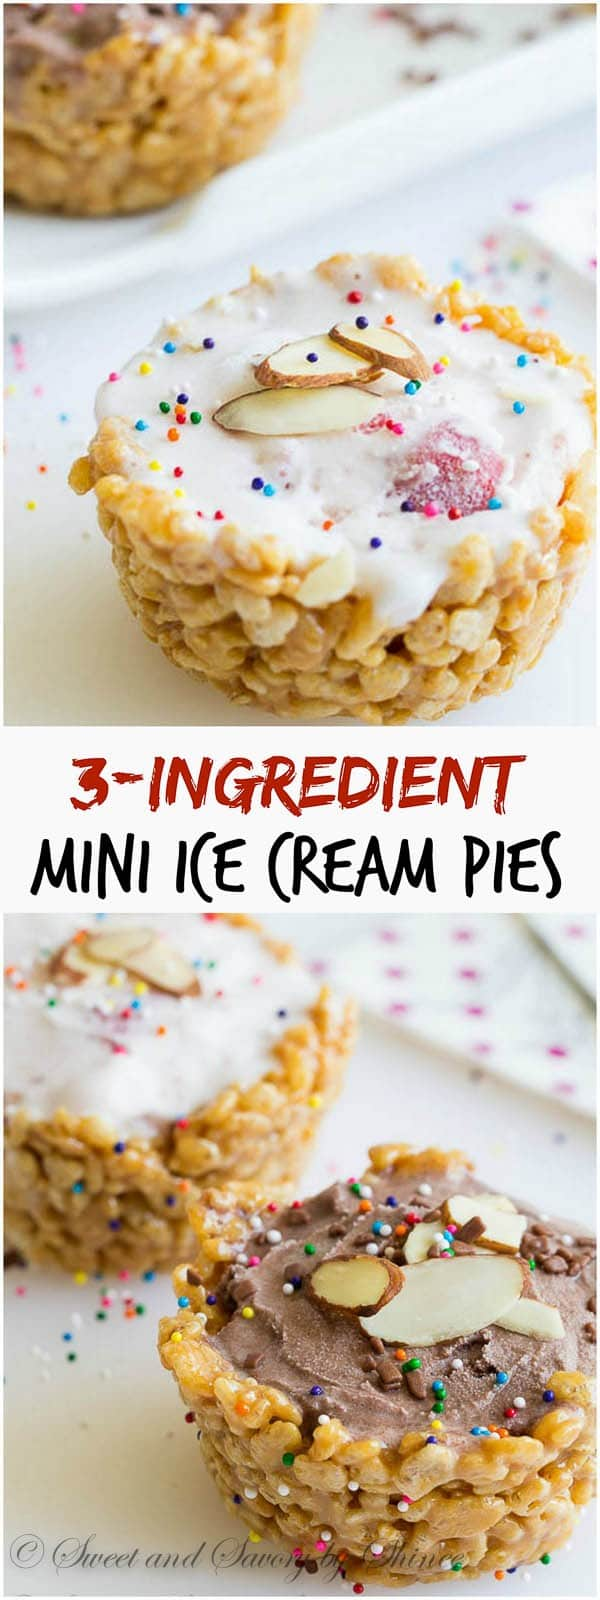 Mini ice cream pies for everyone! Only 3 ingredients to create the most fabulous summer treat.